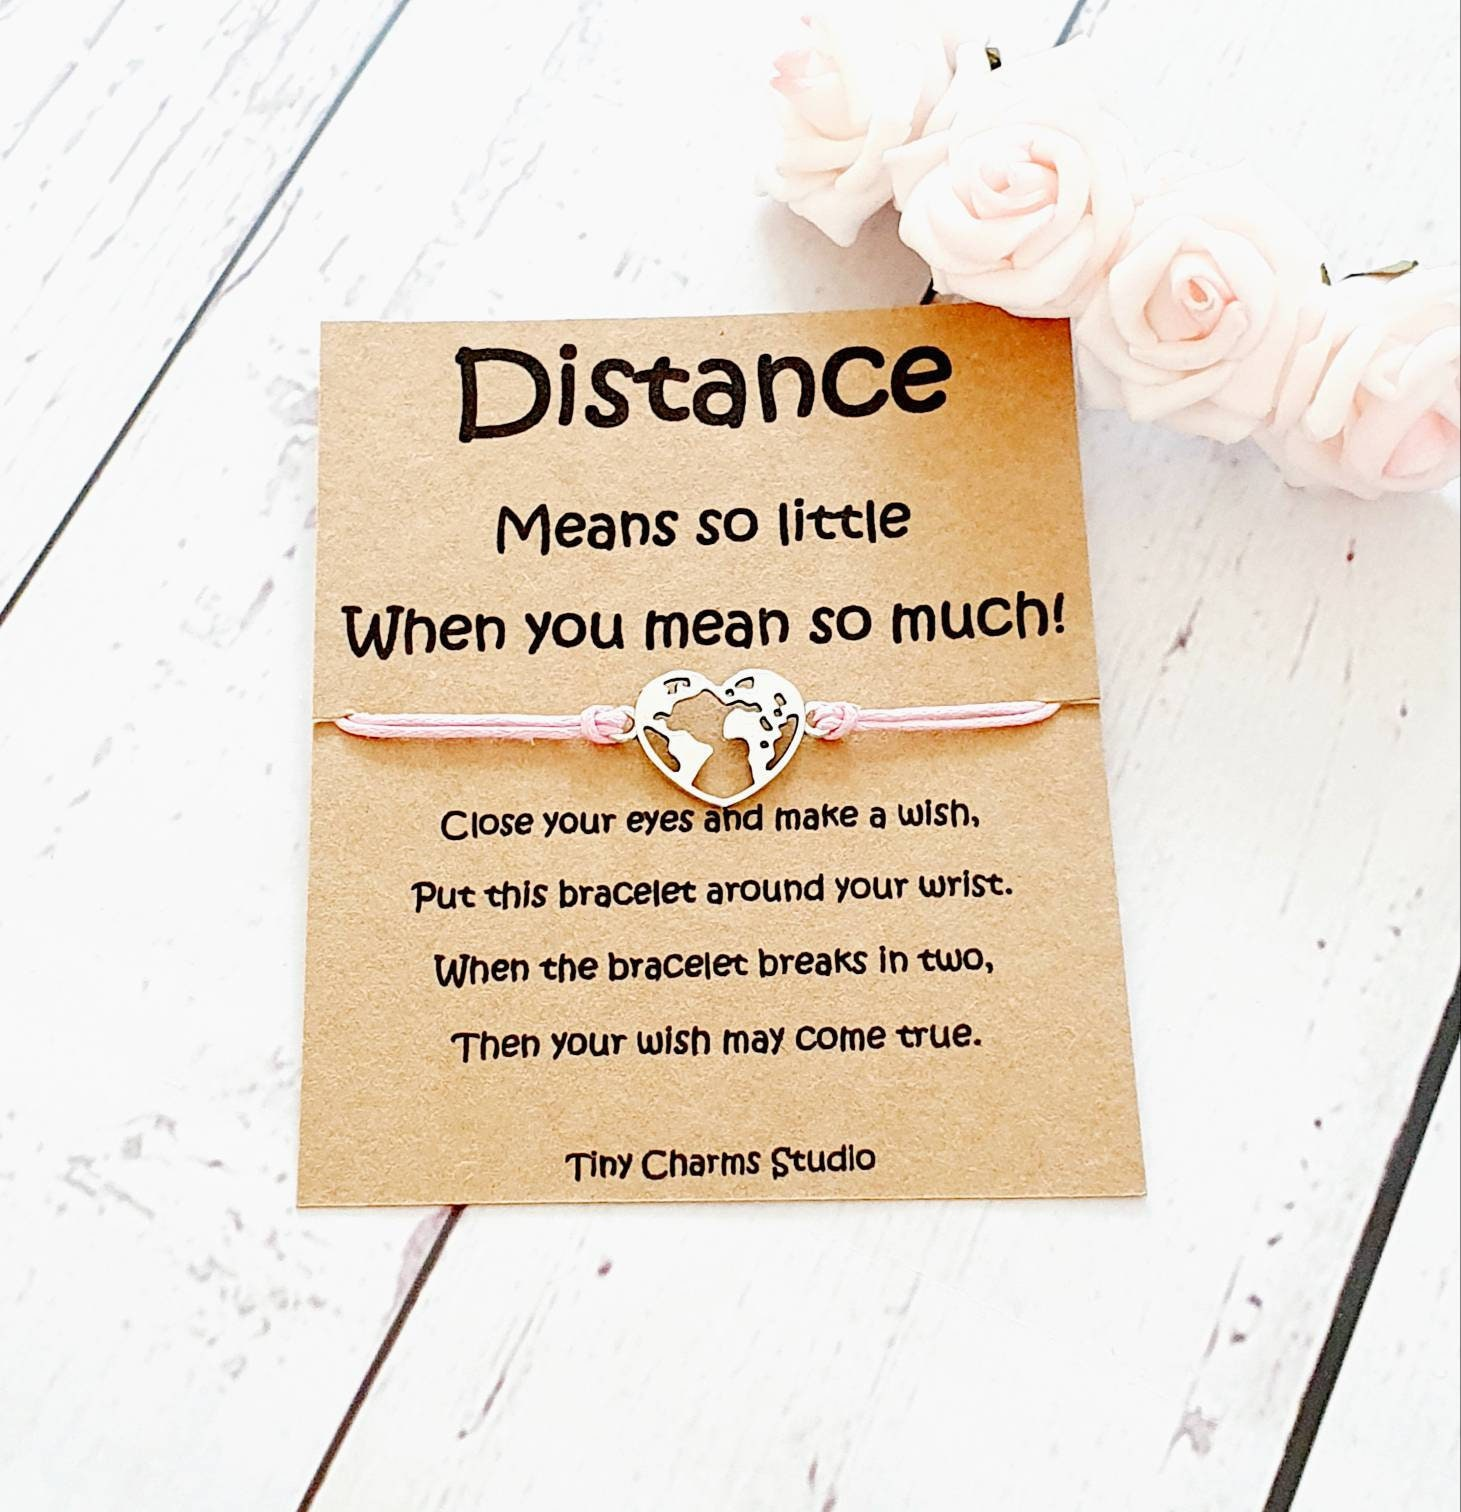 What does taking a break mean in a long distance relationship